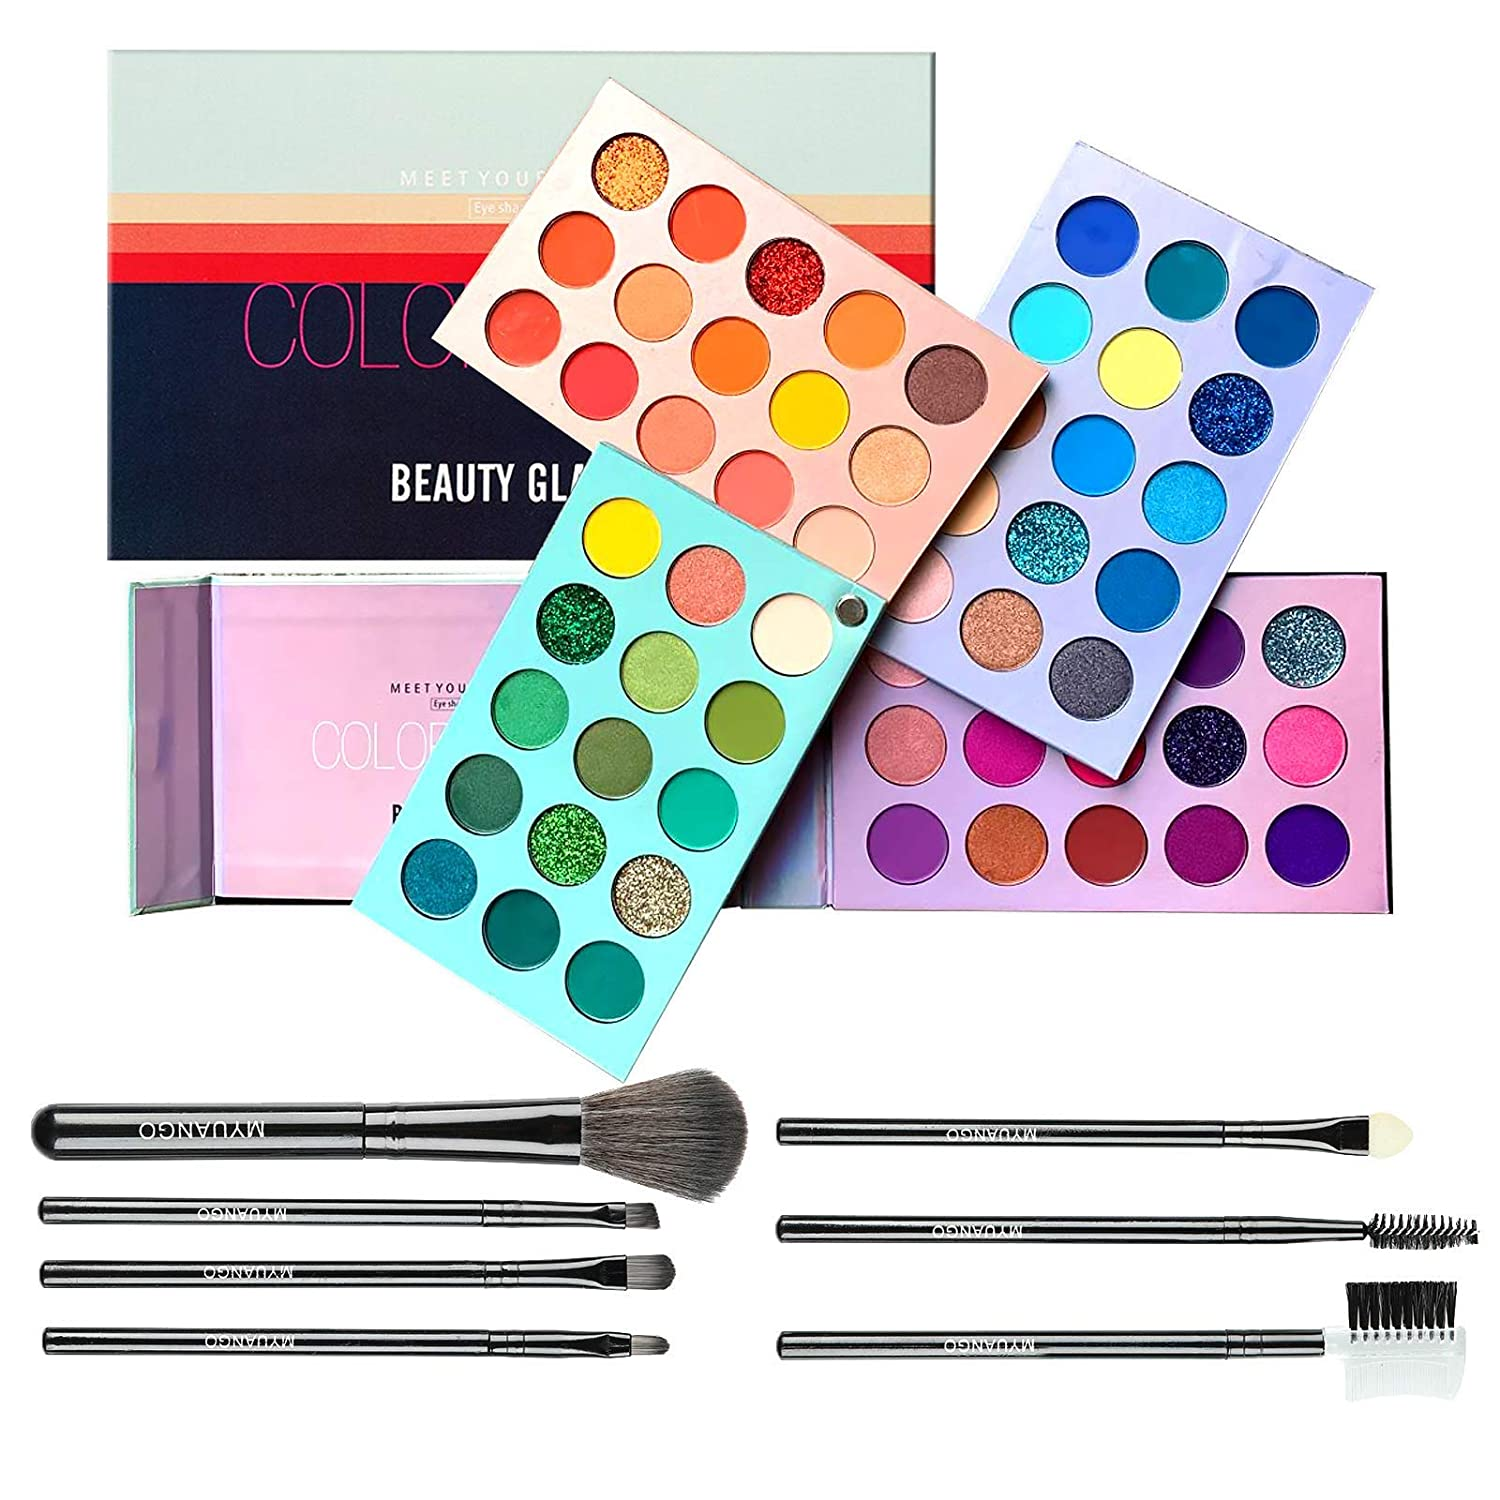 Eyeshadow Palette Free shipping on posting reviews Color Board Genuine Free Shipping Eye With Brushes Se Makeup